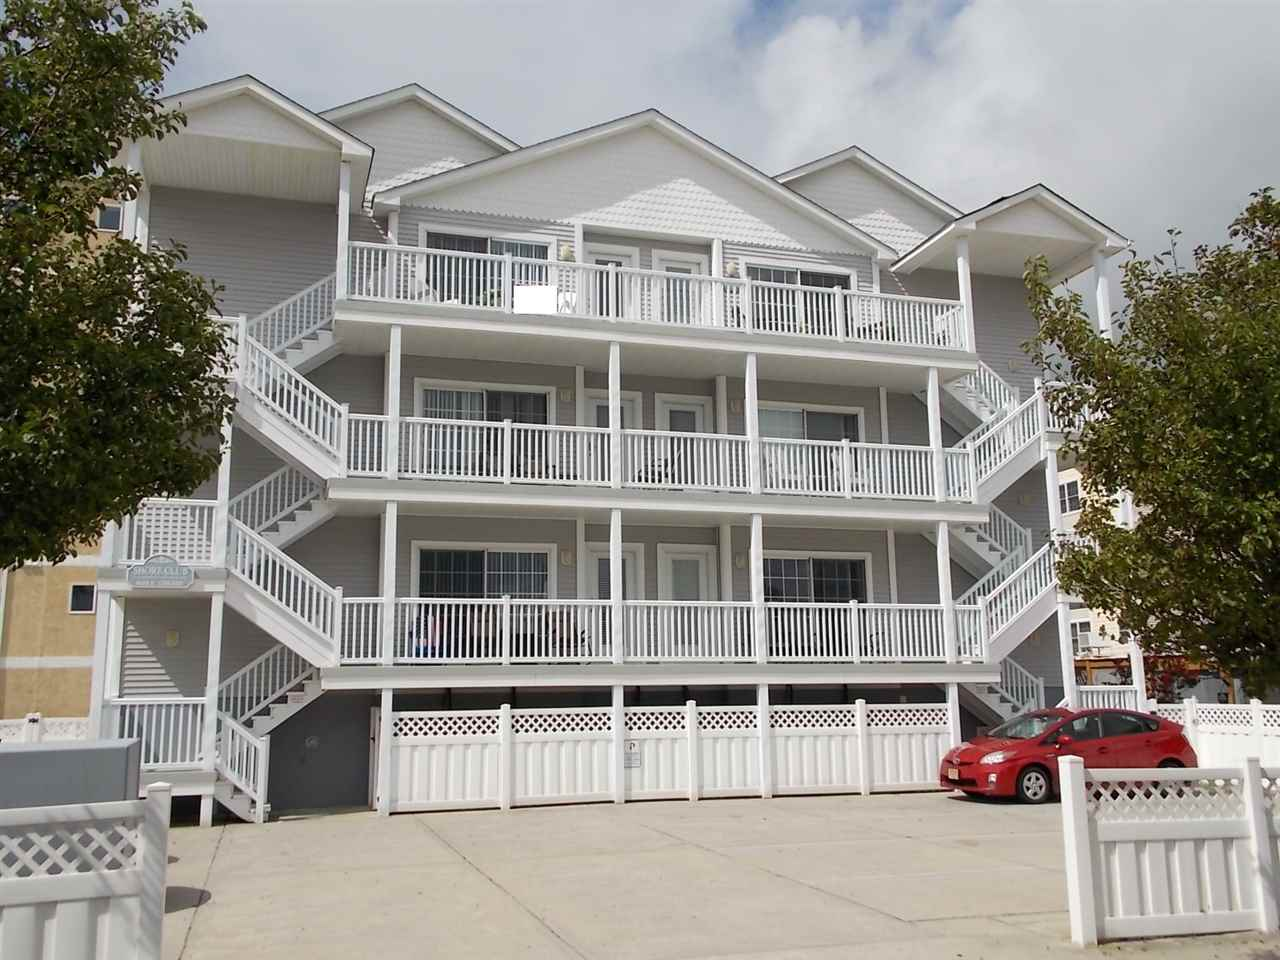 408, Unit 301 Cresse, Wildwood Crest